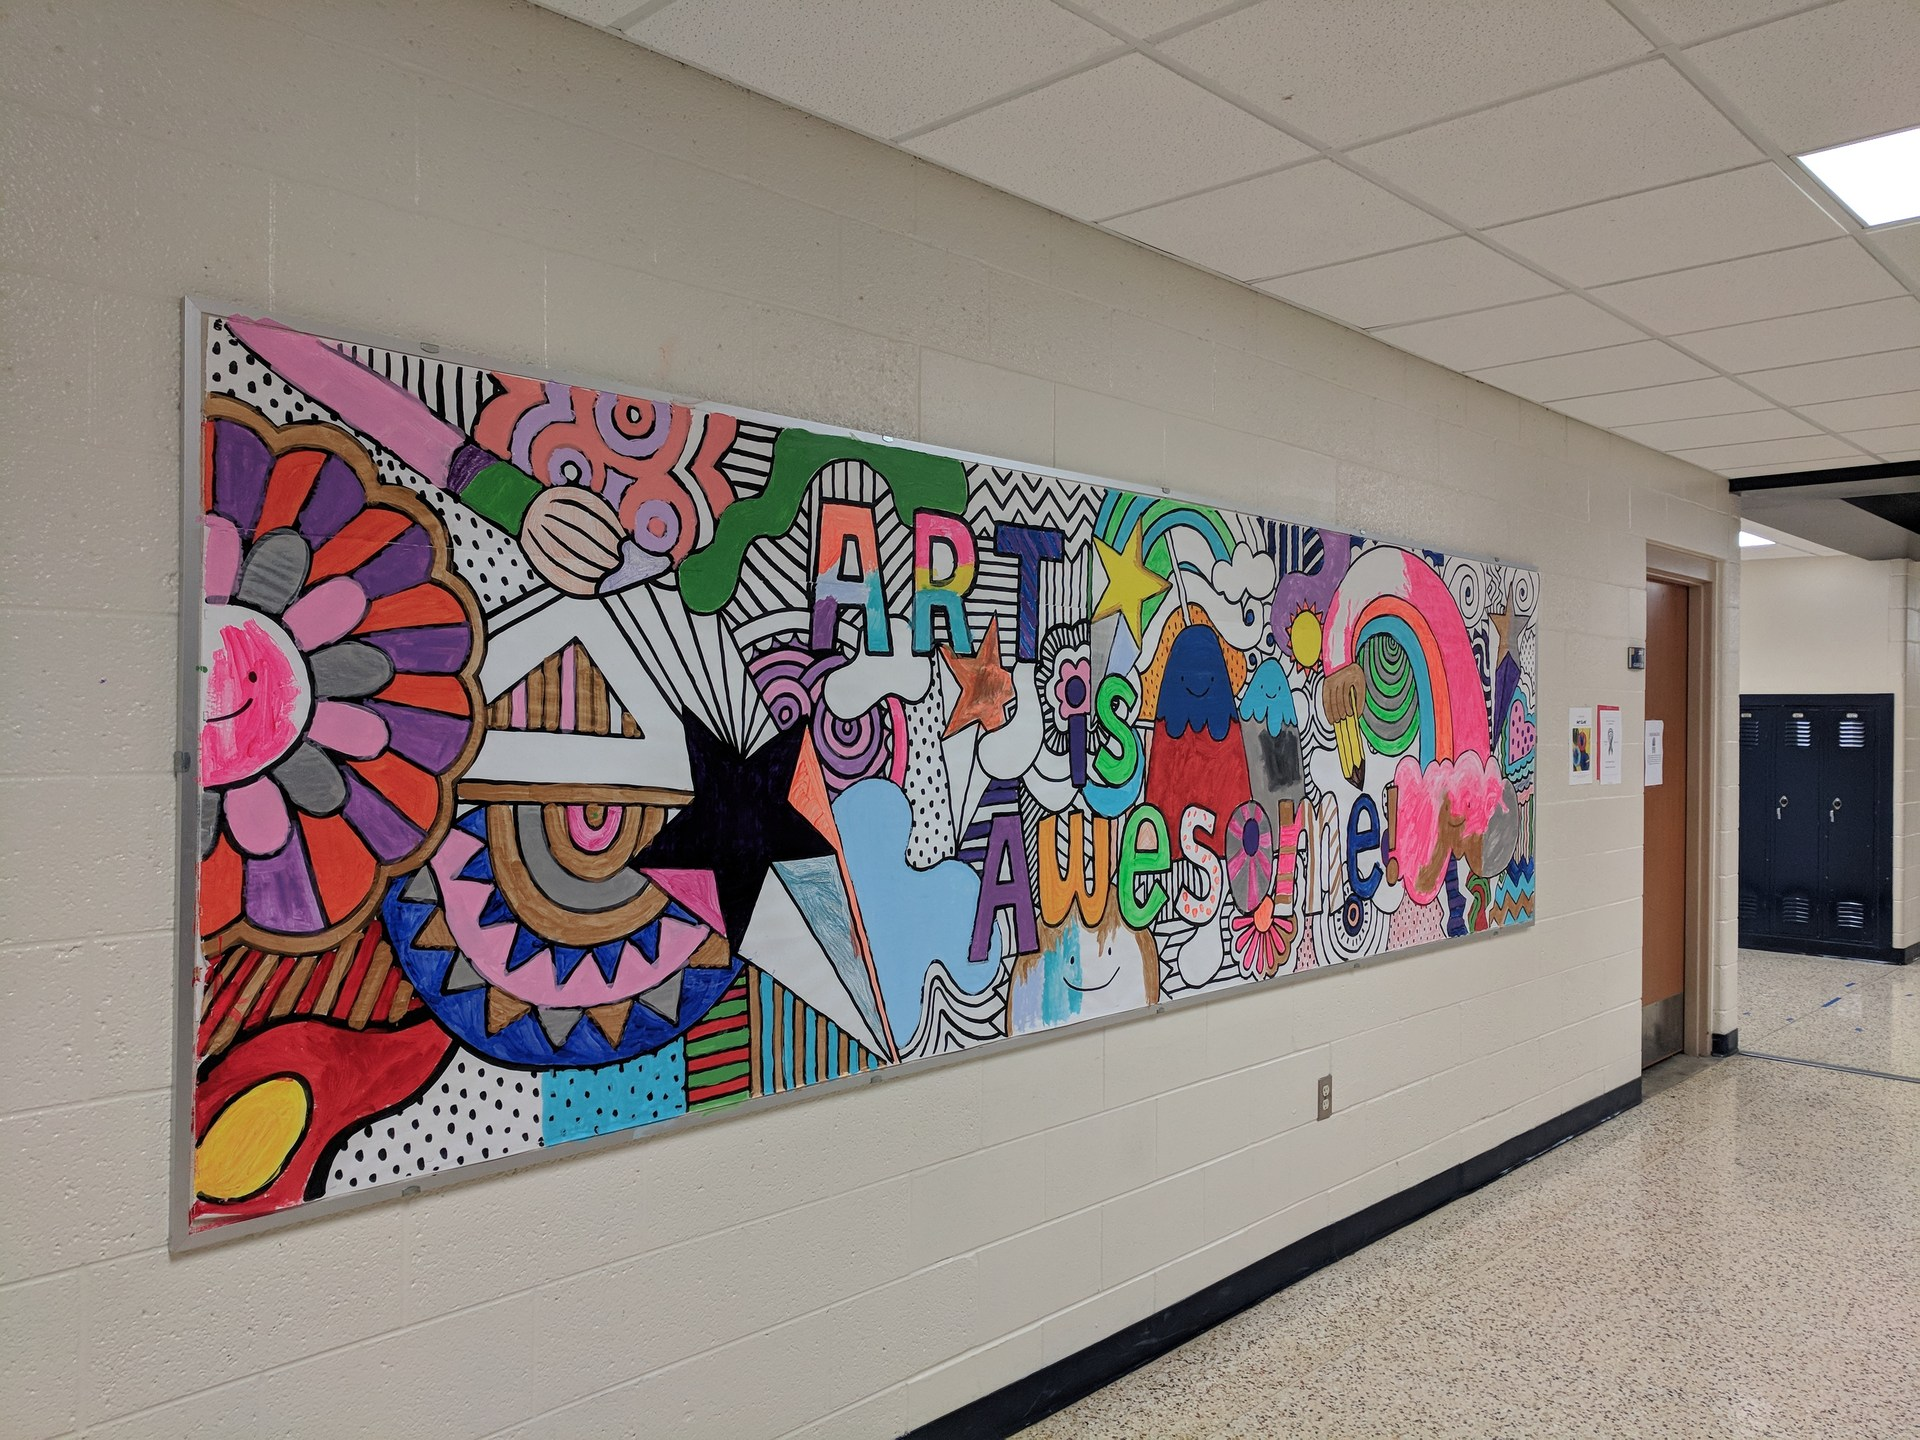 Painting is almost complete on the 'Art is Awesome' picture outside the art room.